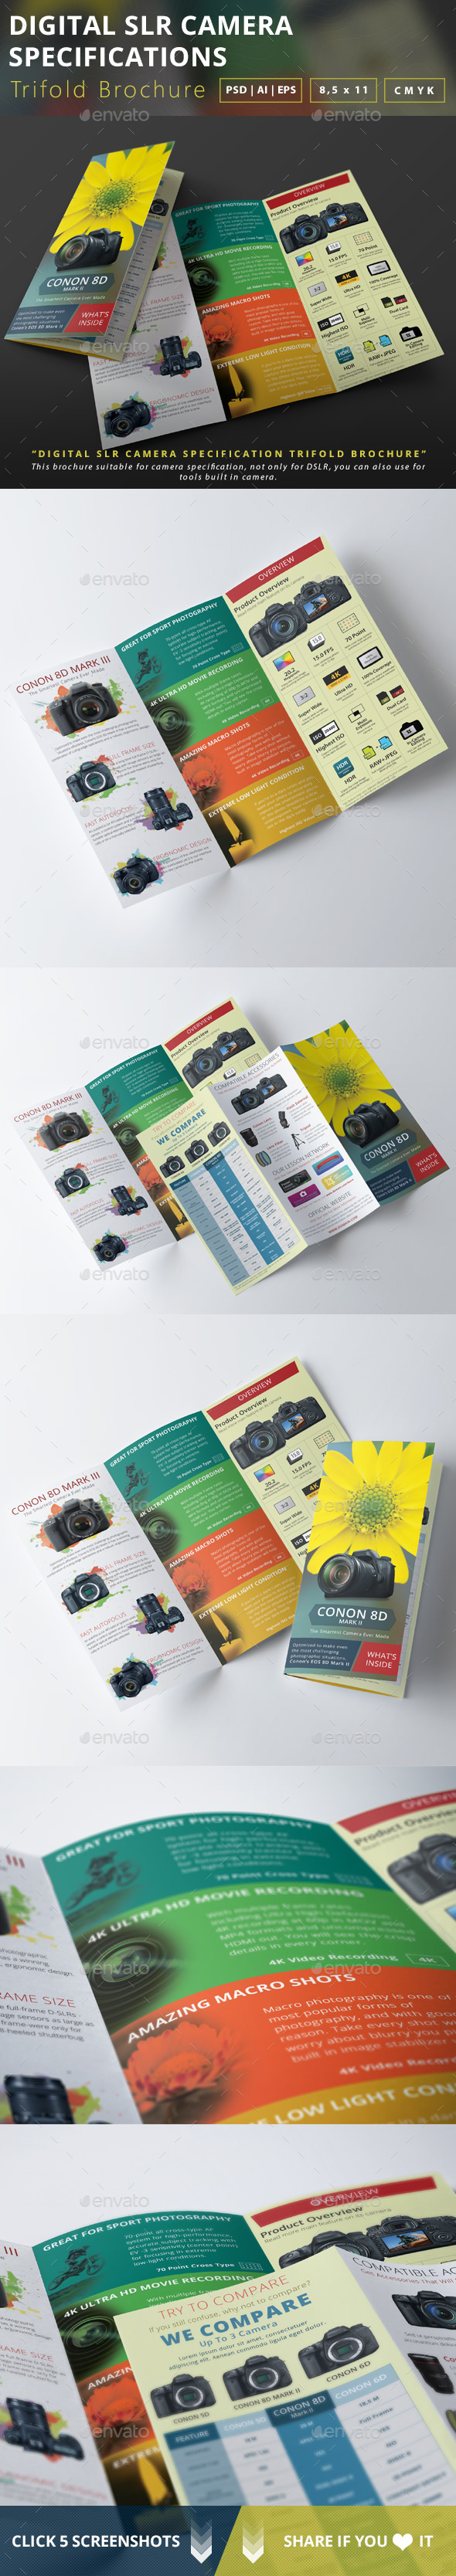 Digital Slr Camera Specifications Trifold Brochure - Brochures Print Templates